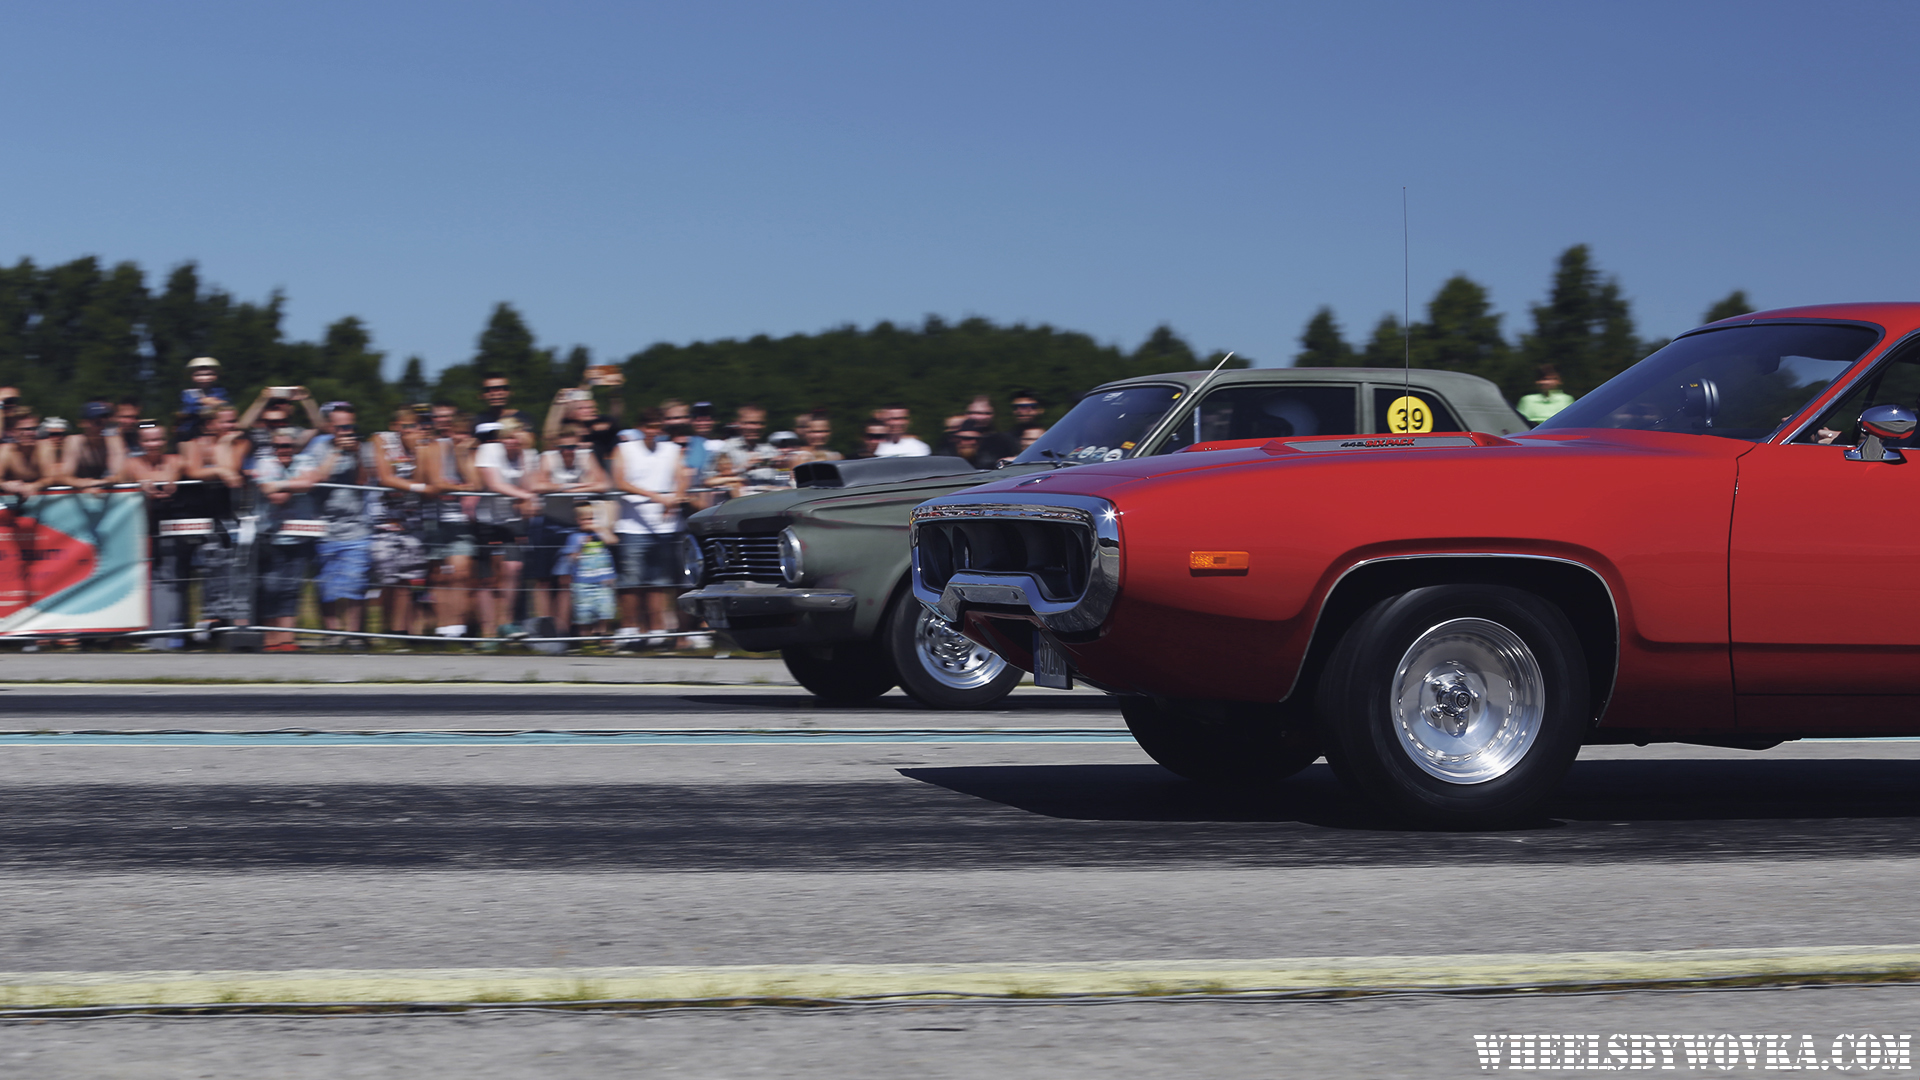 american-beauty-car-show-2017-haapsalu-dragrace-by-wheelsbywovka-13